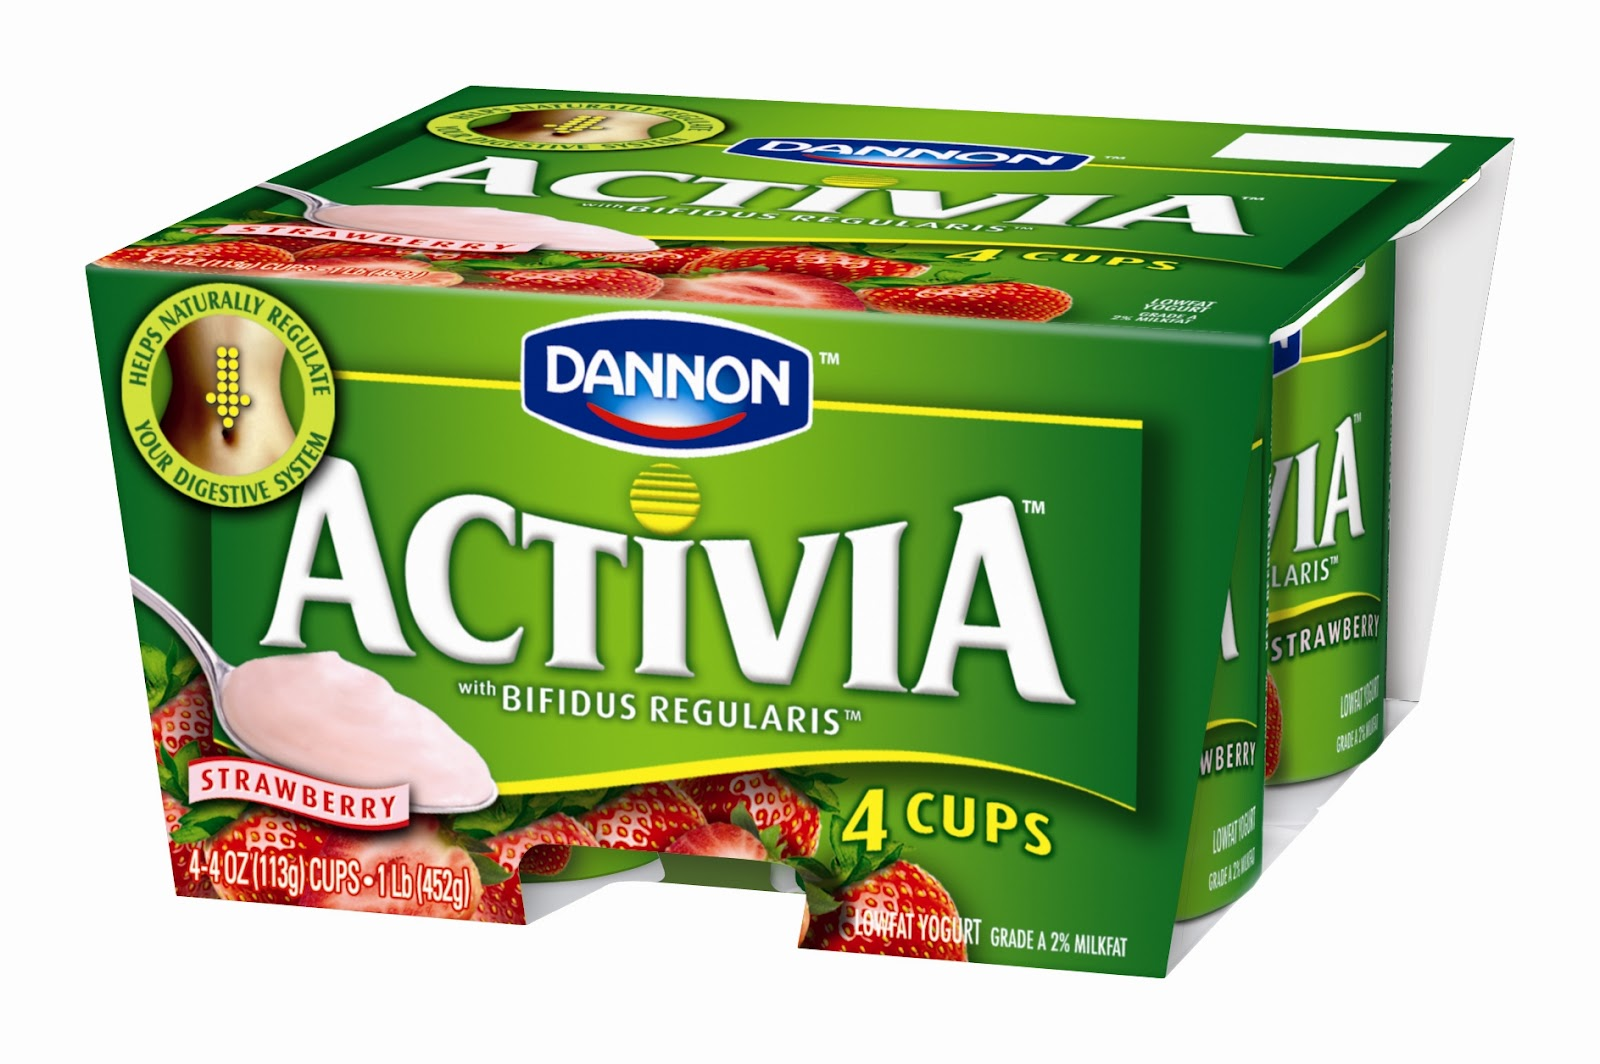 Target Dannon Activia For 019 on walgreens logo